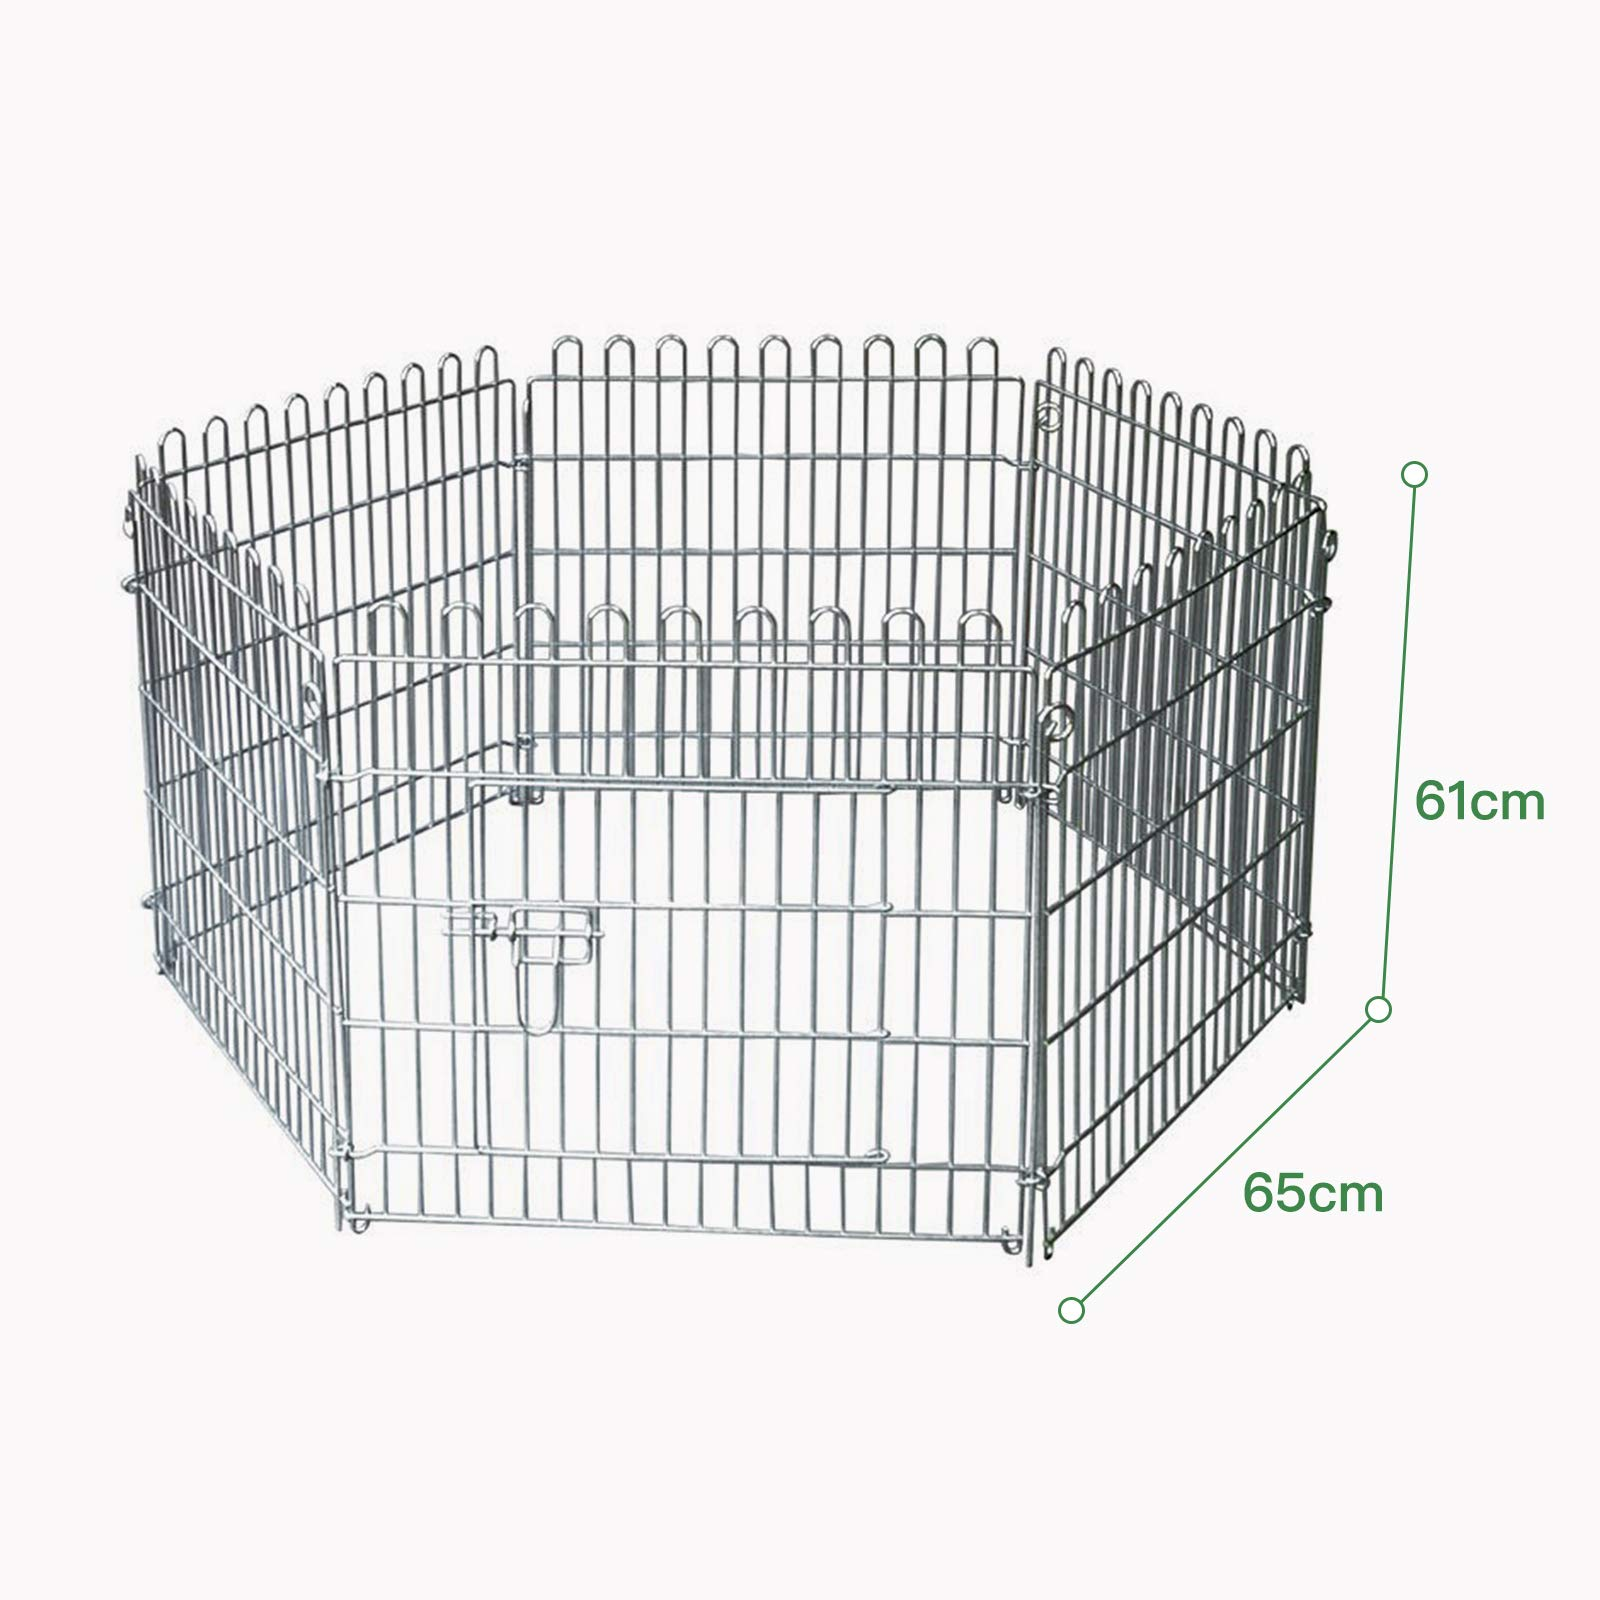 Nurxiovo Metal Large Pet Dog Fence Animal Pen Gate Portable Outdoor Kennel  Cage Playpen Exercise RV Play Yard 6 Pcs 24''HX 26''L / 65H * 61L cm